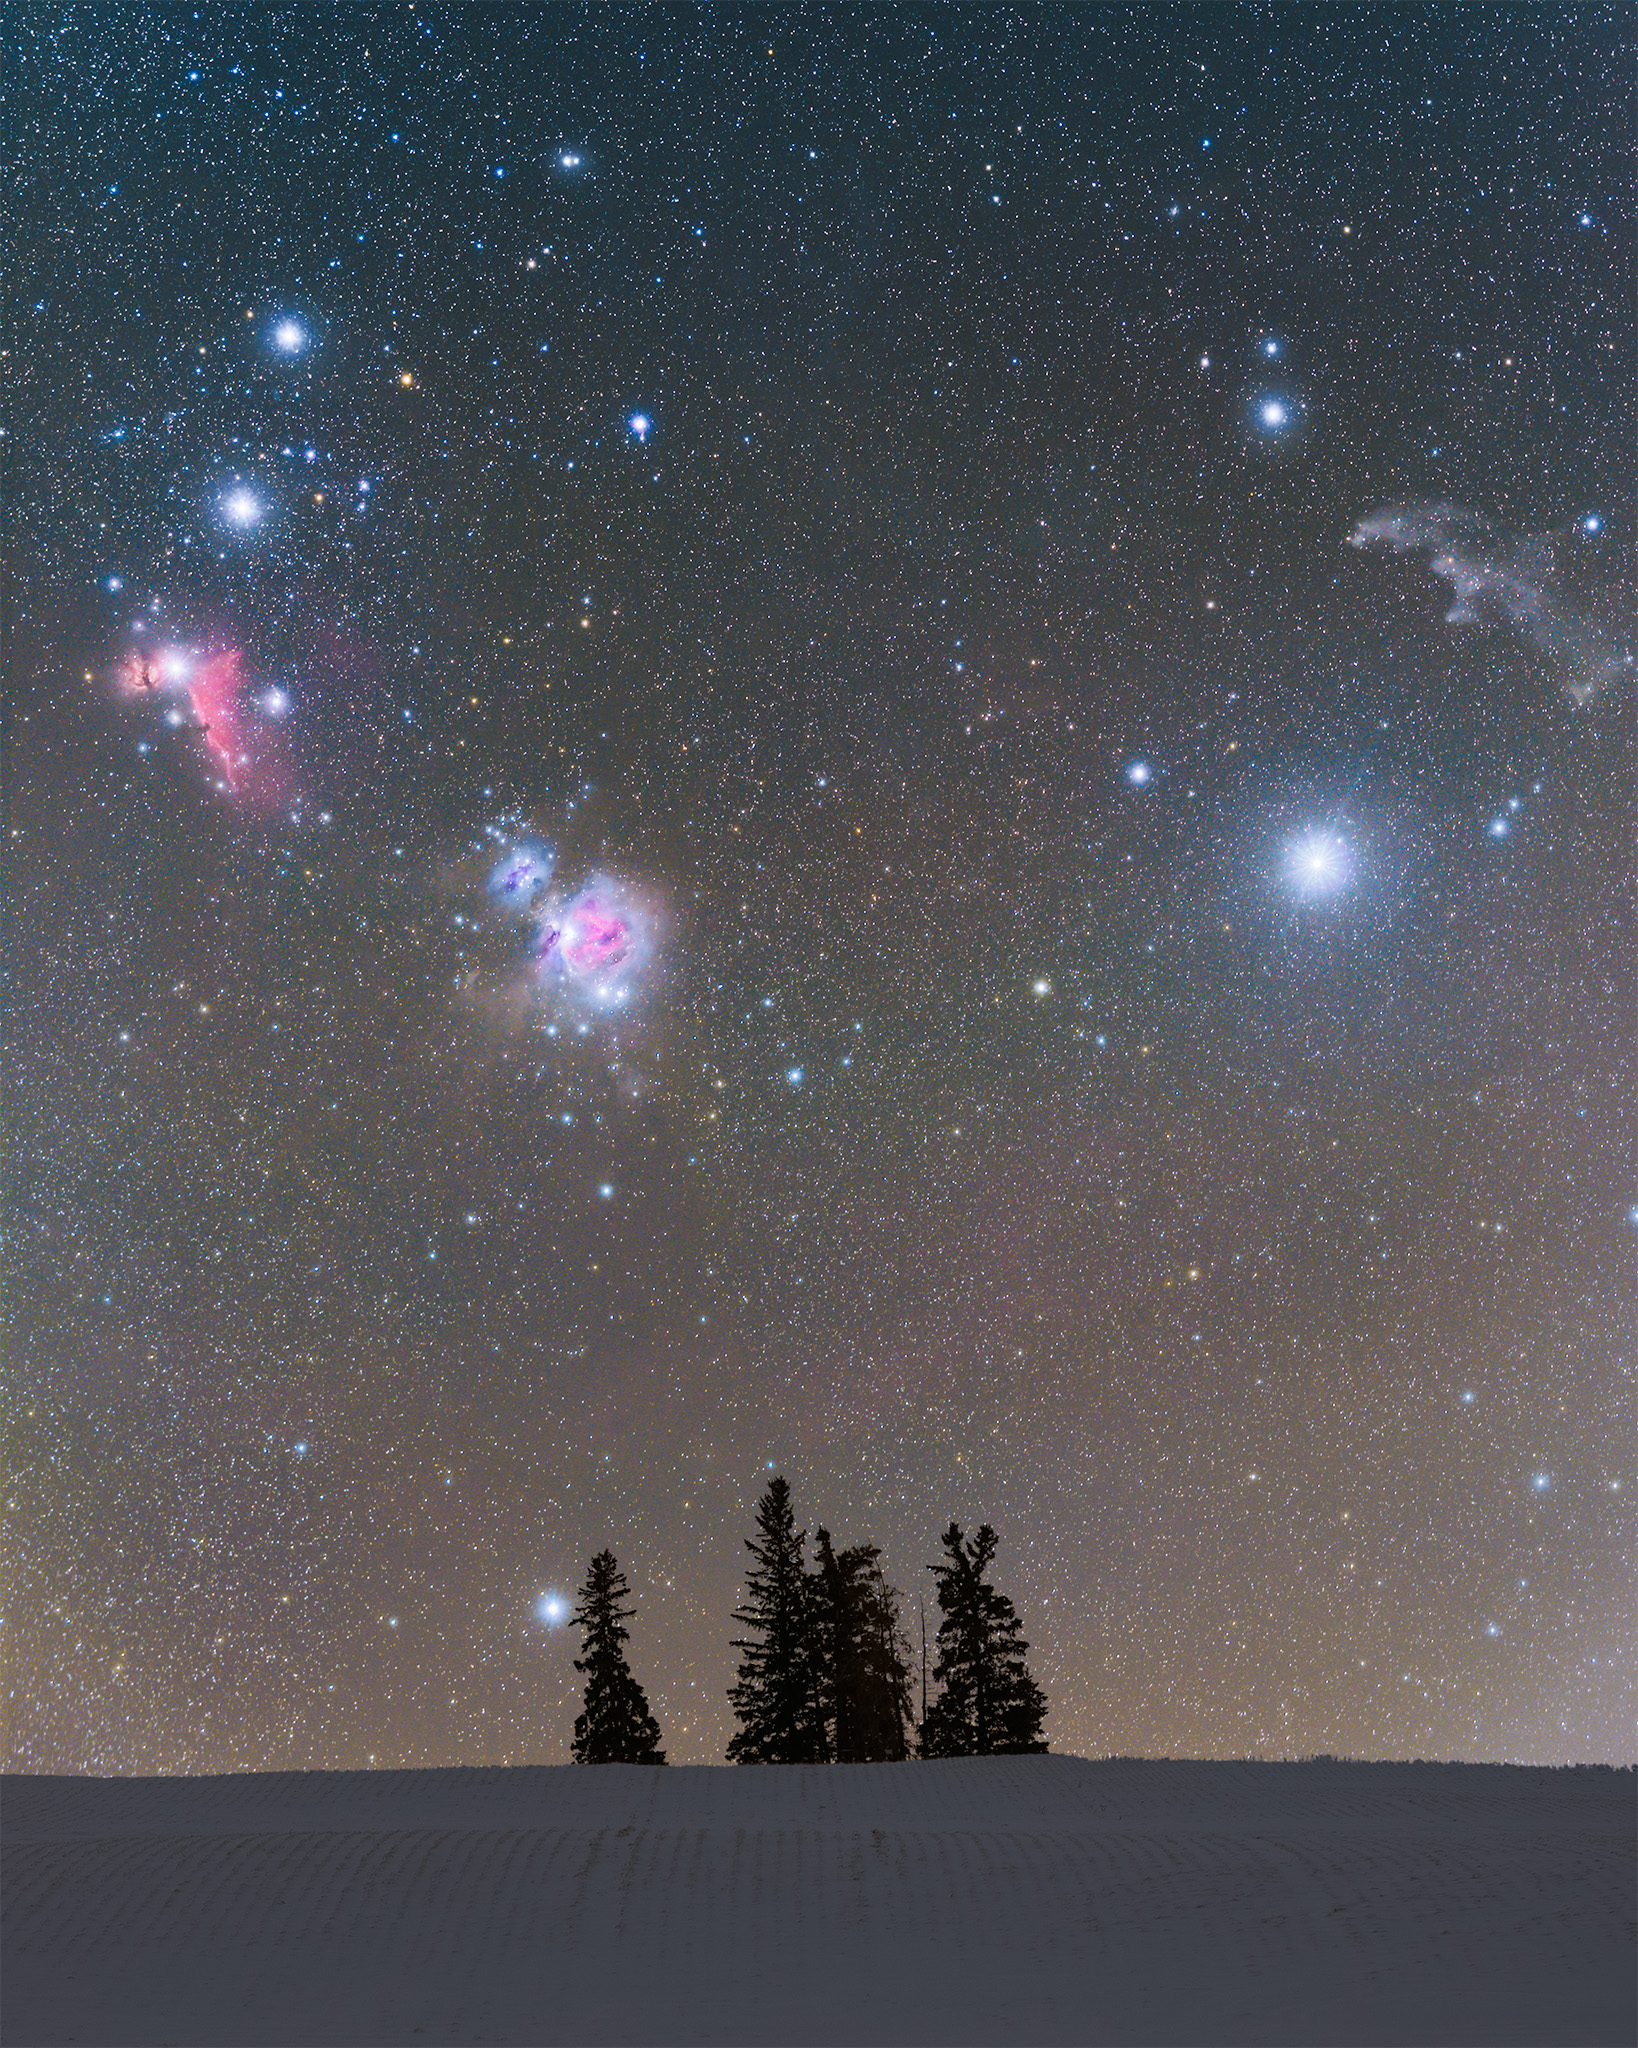 A night photograph of the constellation Orion over a few trees in Saskatchewan in the middle of winter.